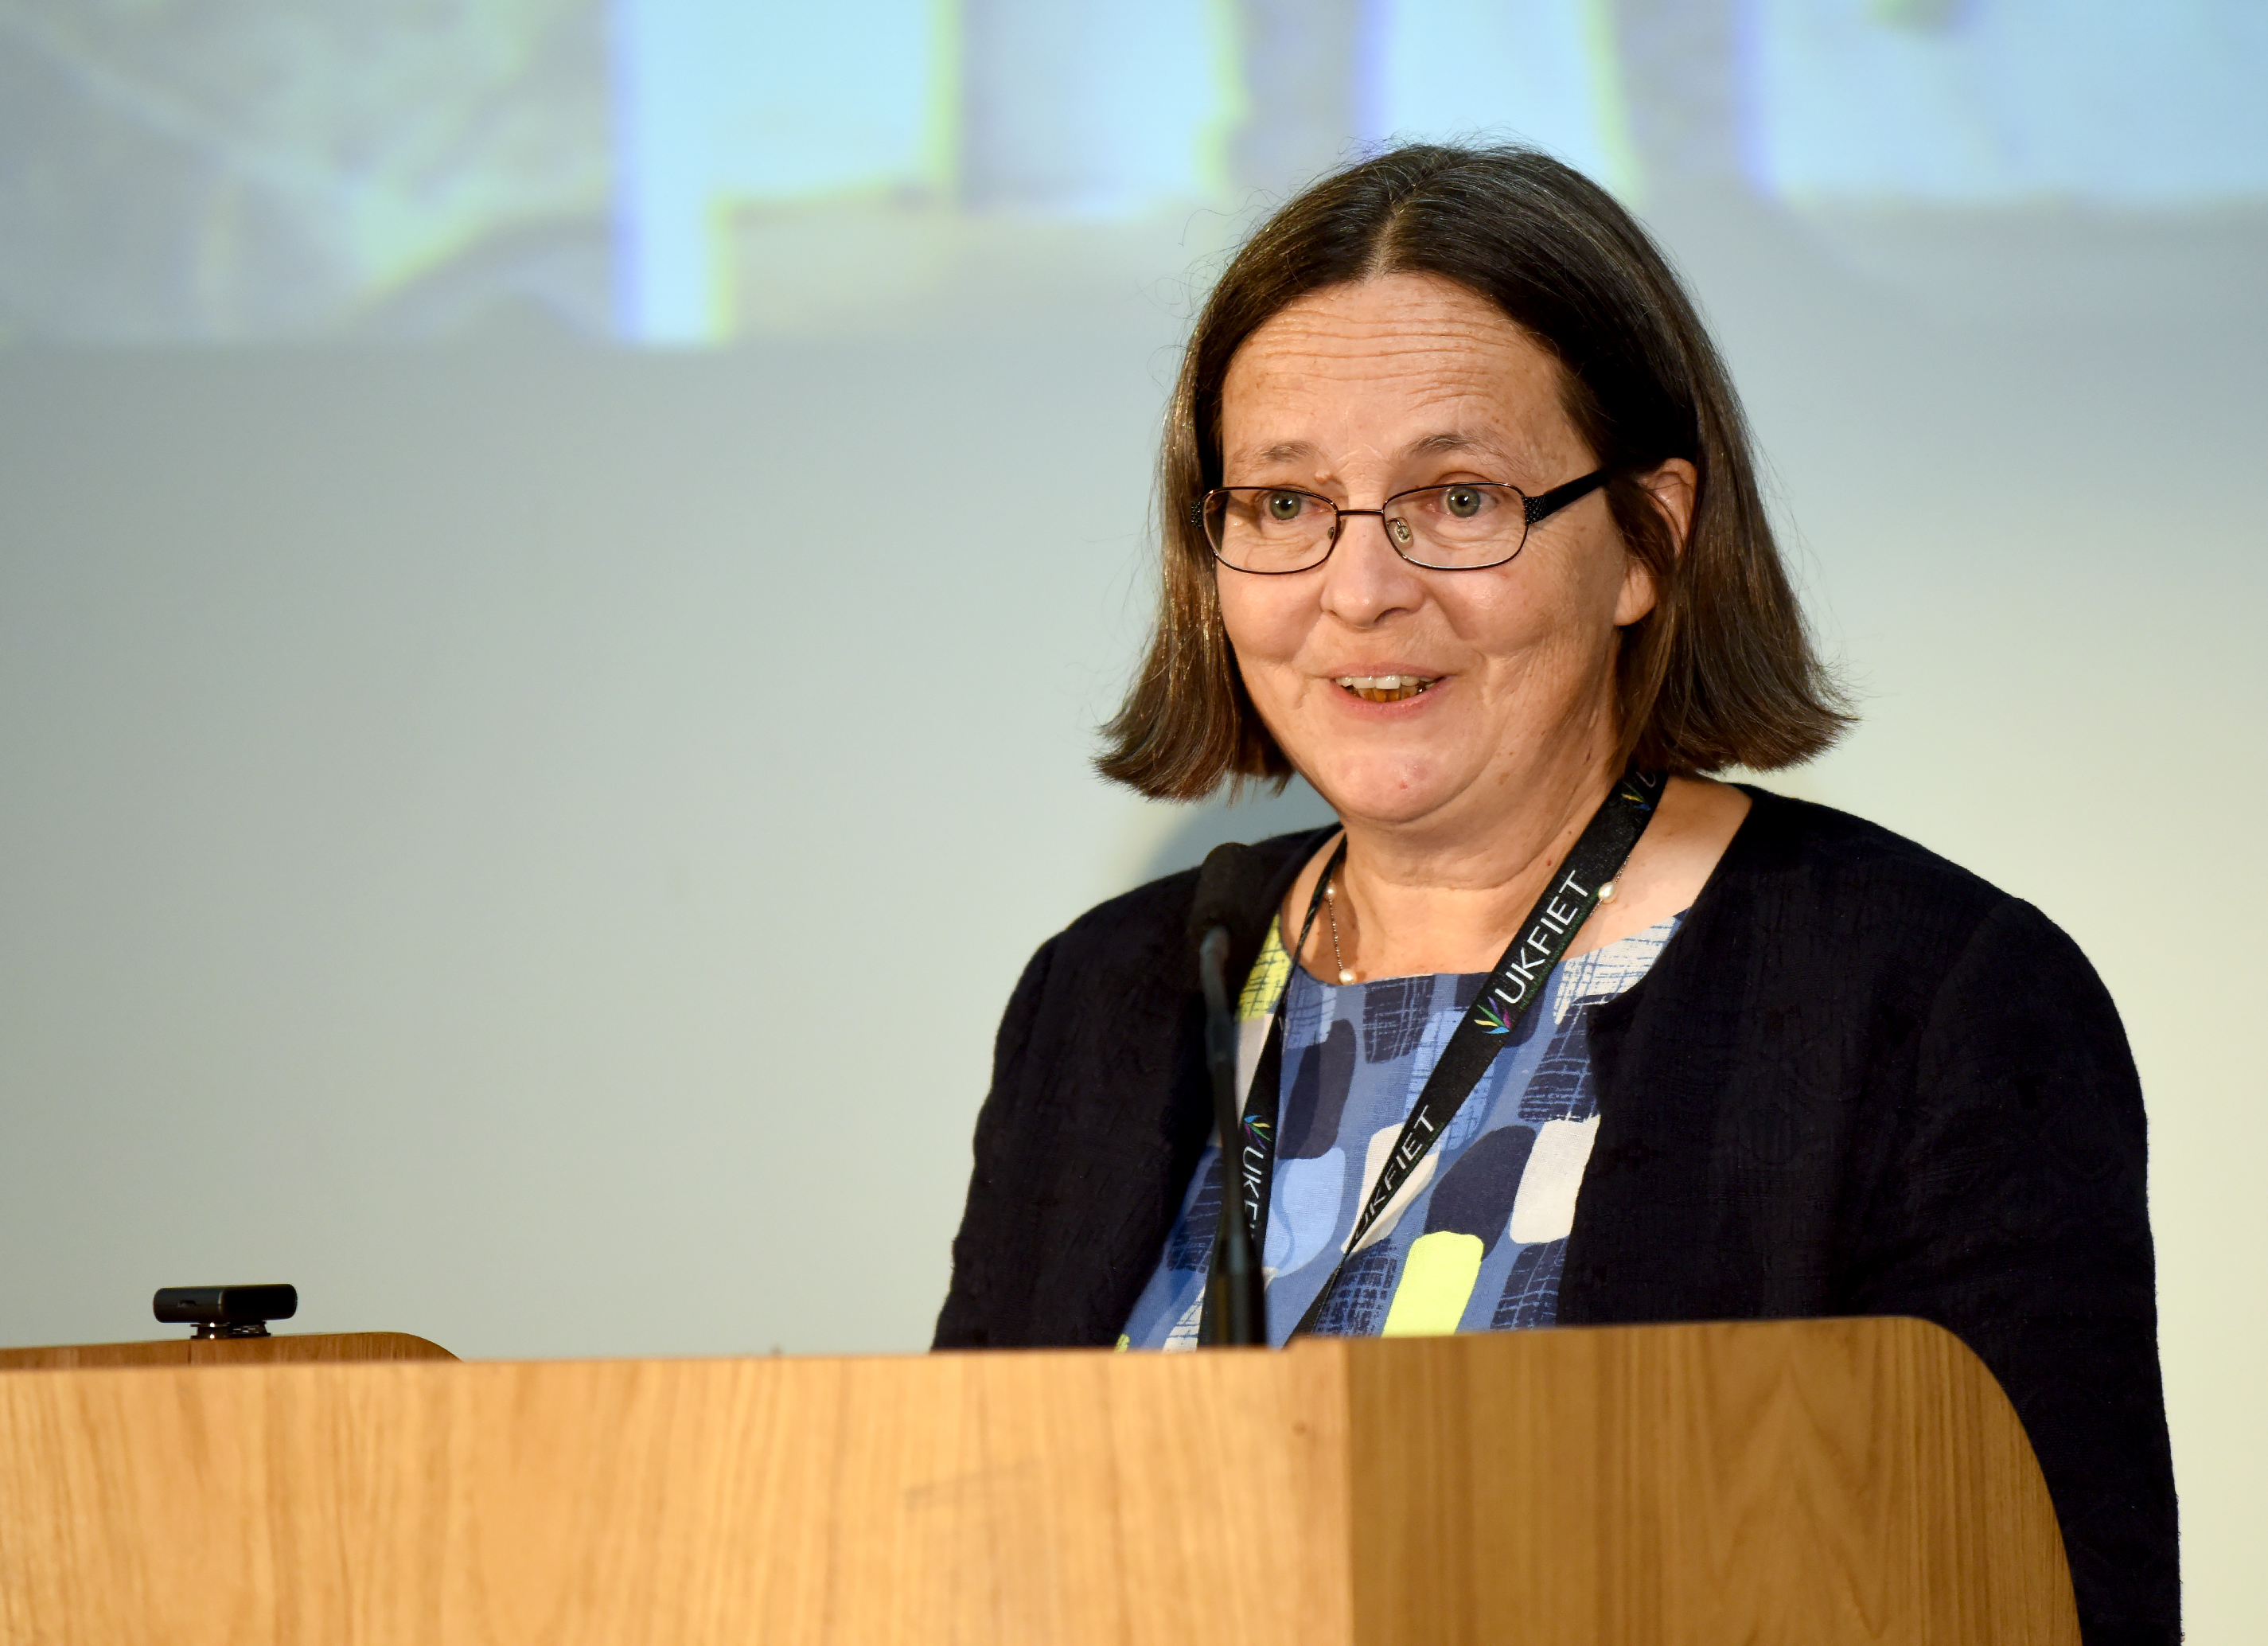 Inclusive Education: thinking beyond systems – summary of BAICE plenary at UKFIET conference 2019